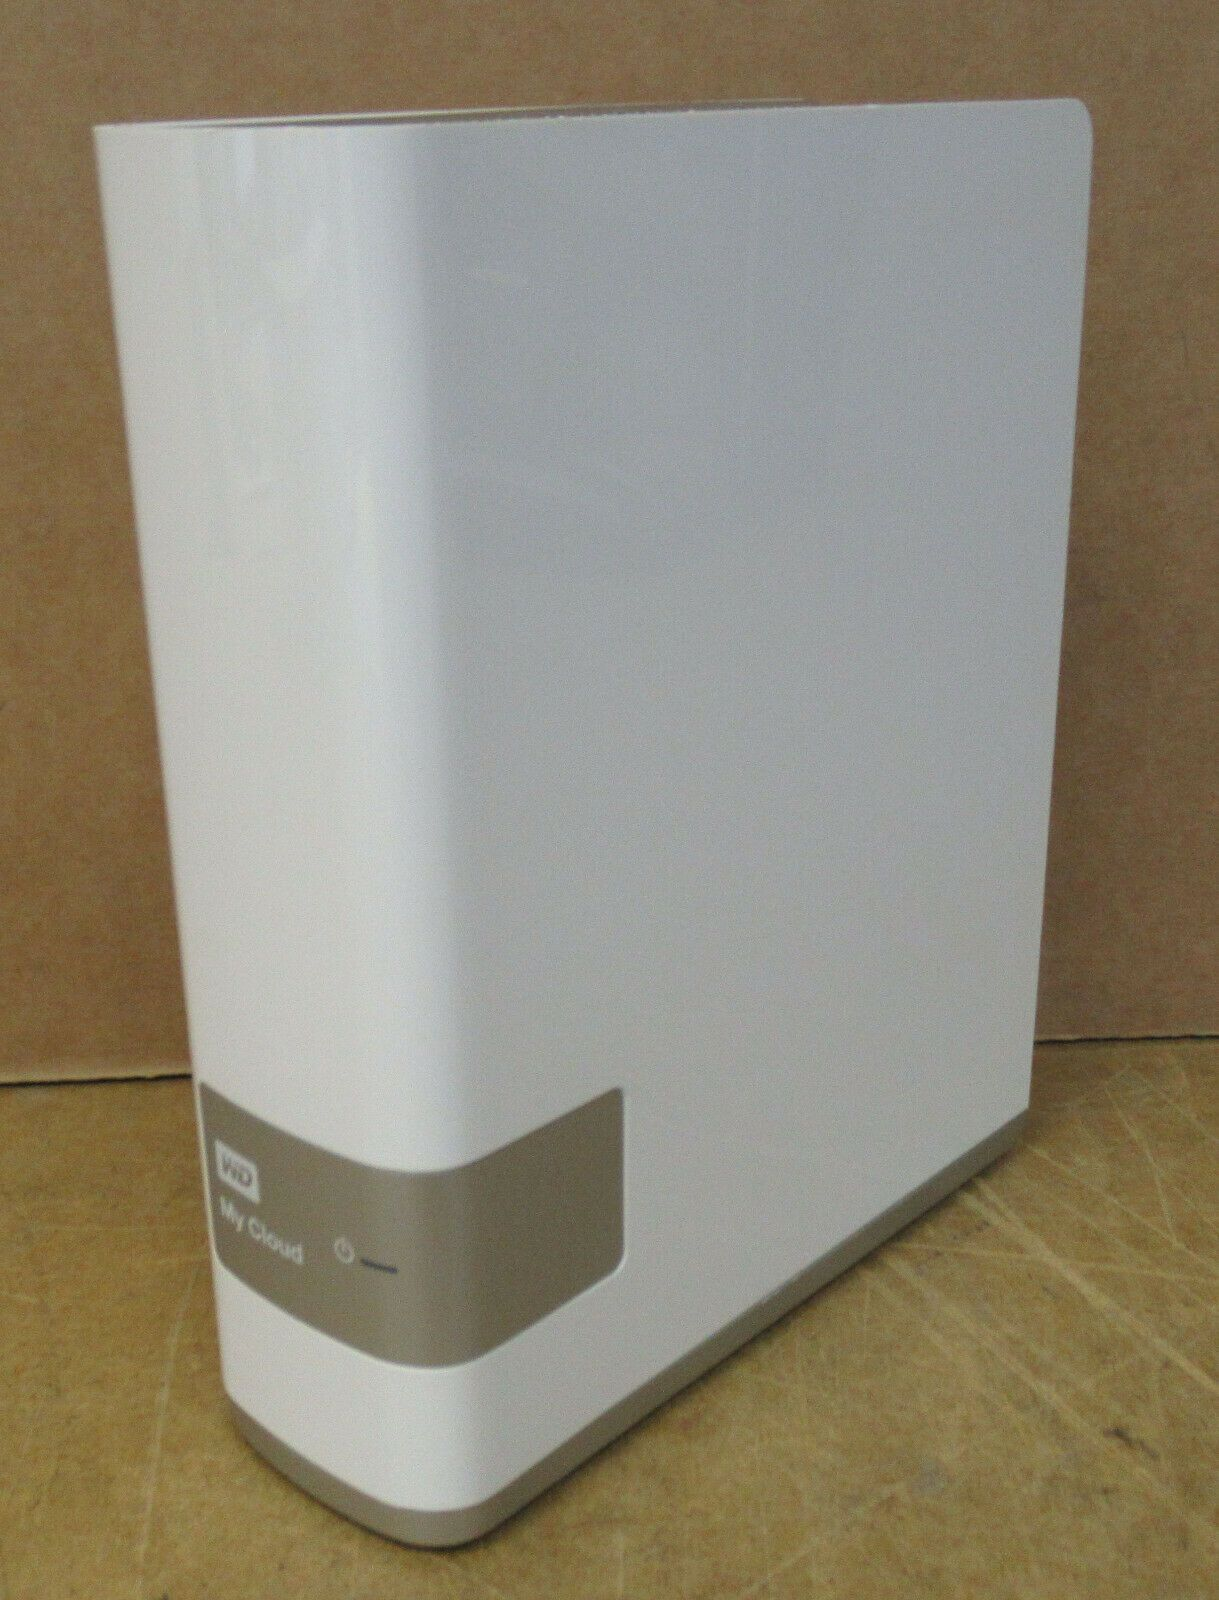 Western Digital 4TB My Cloud Personal Network Attached